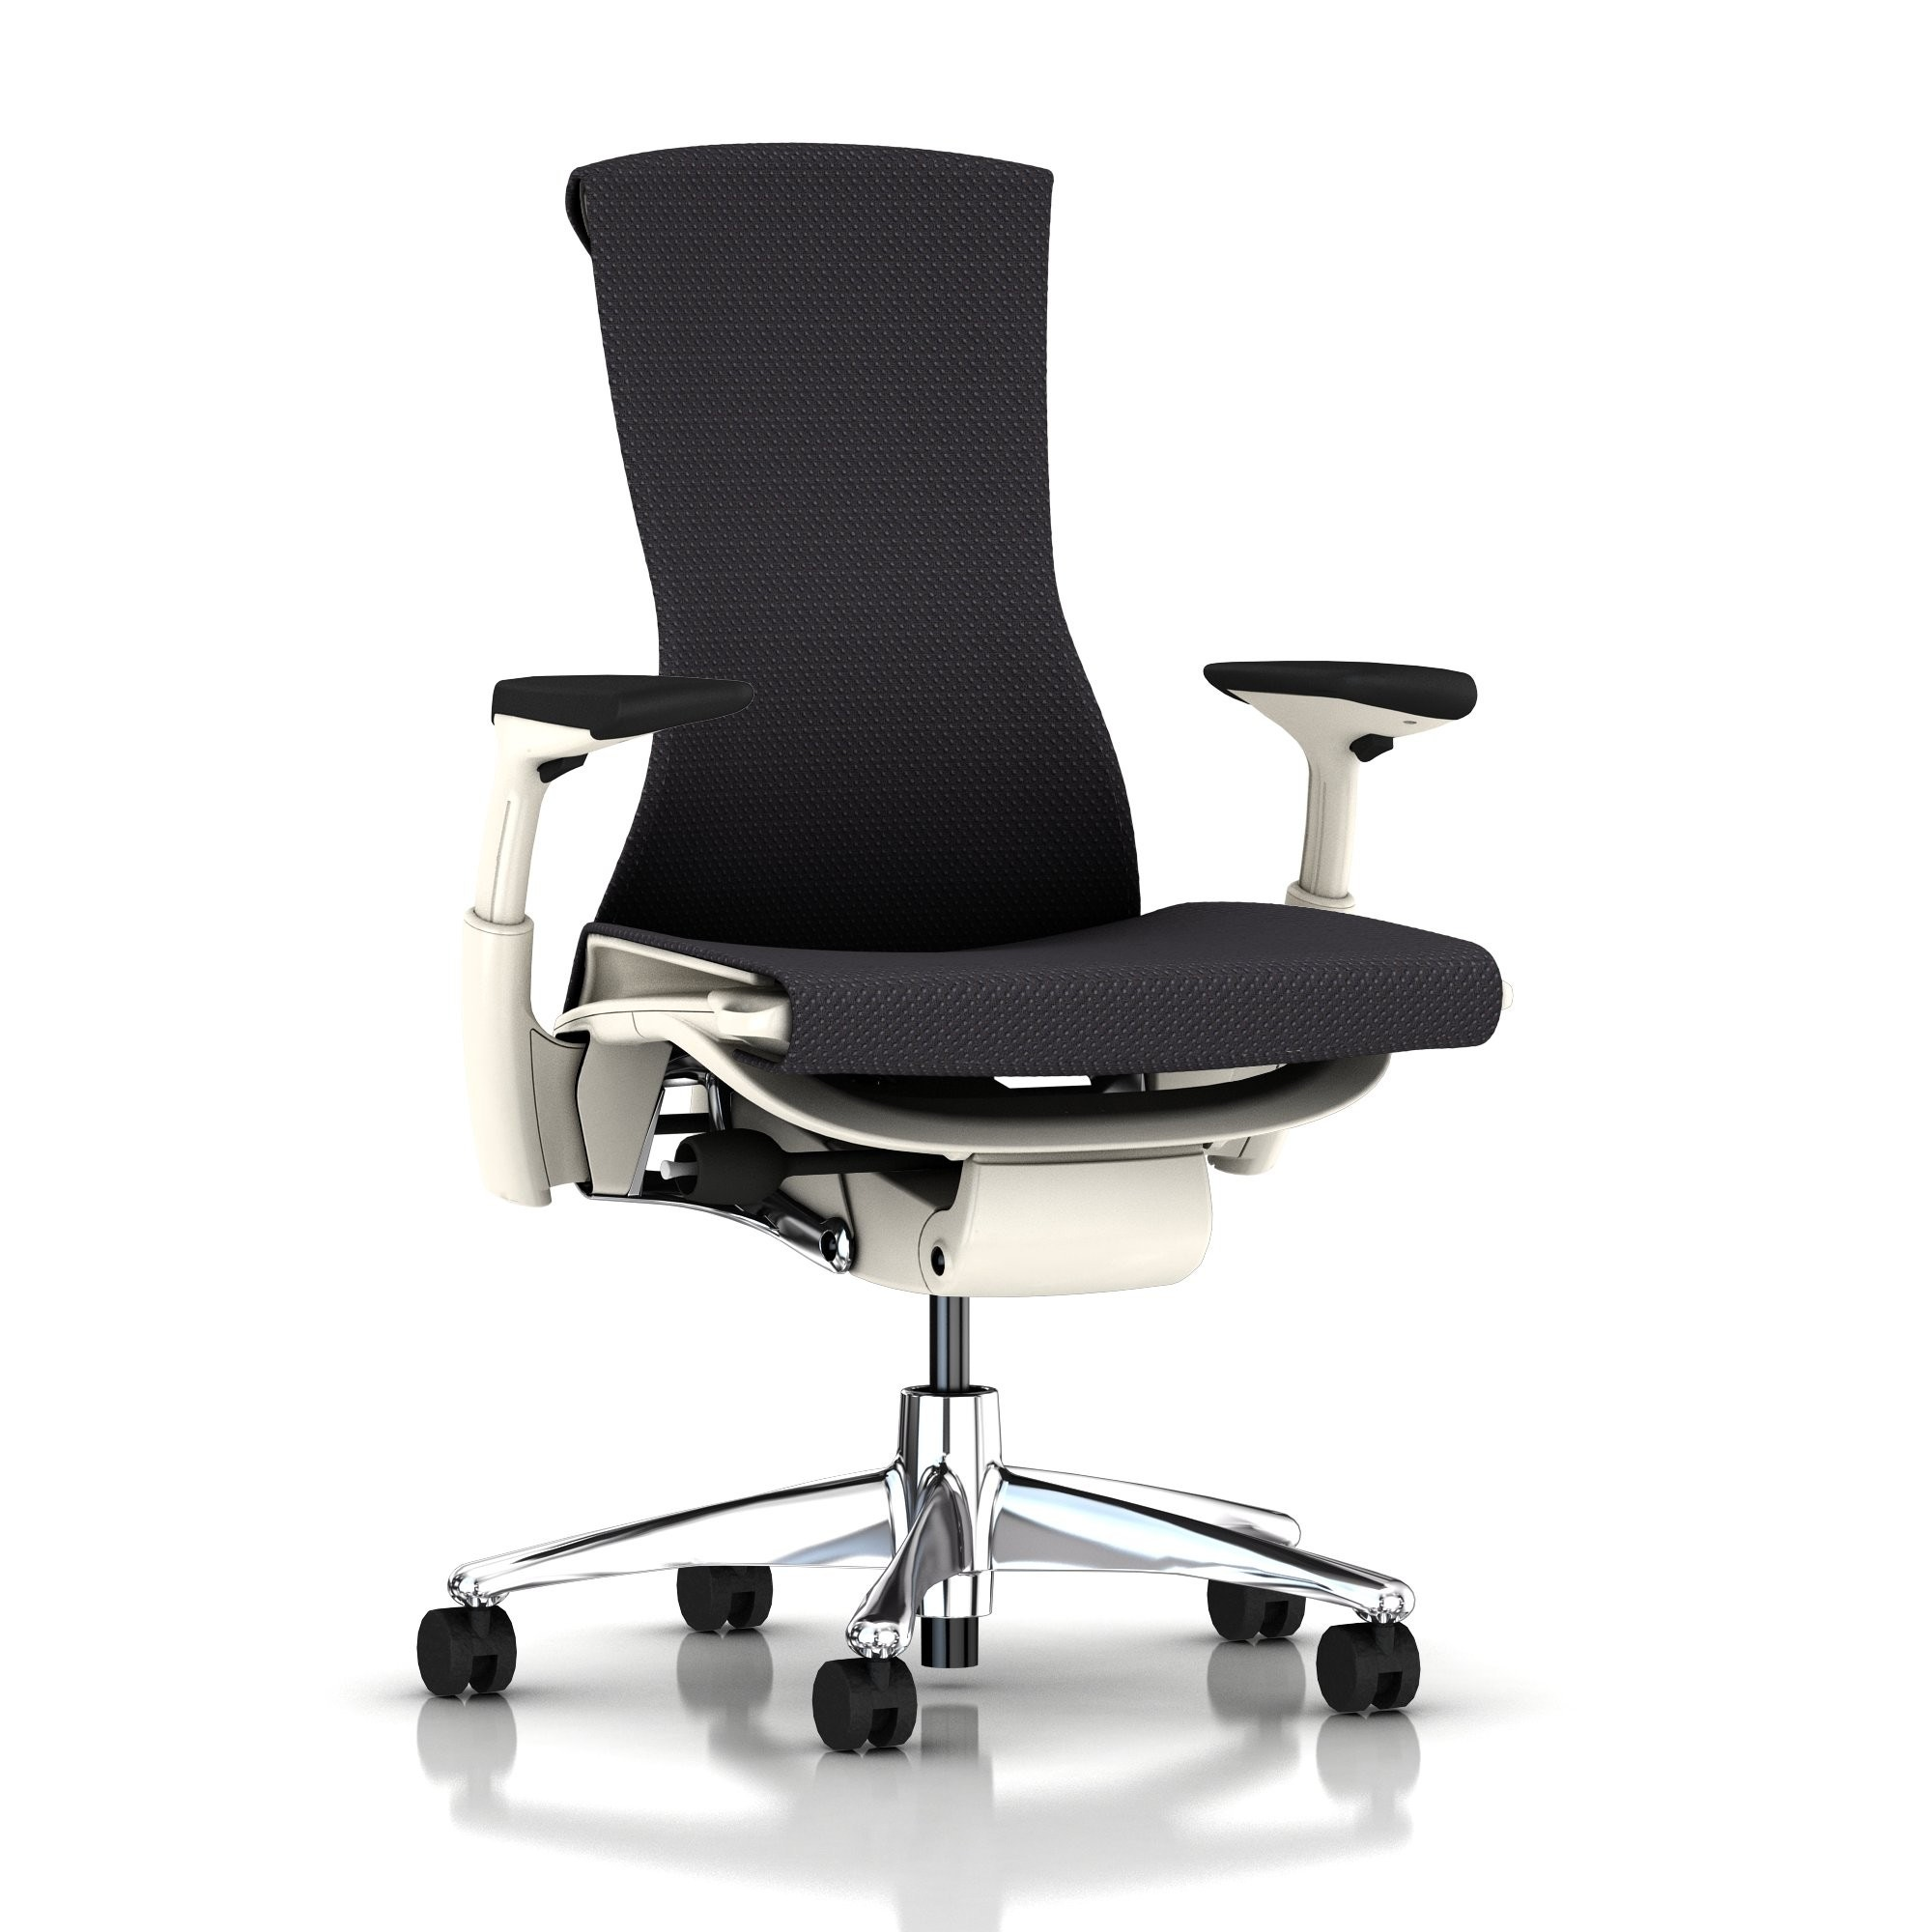 Herman miller chair - Herman Miller Embody Chair Executive